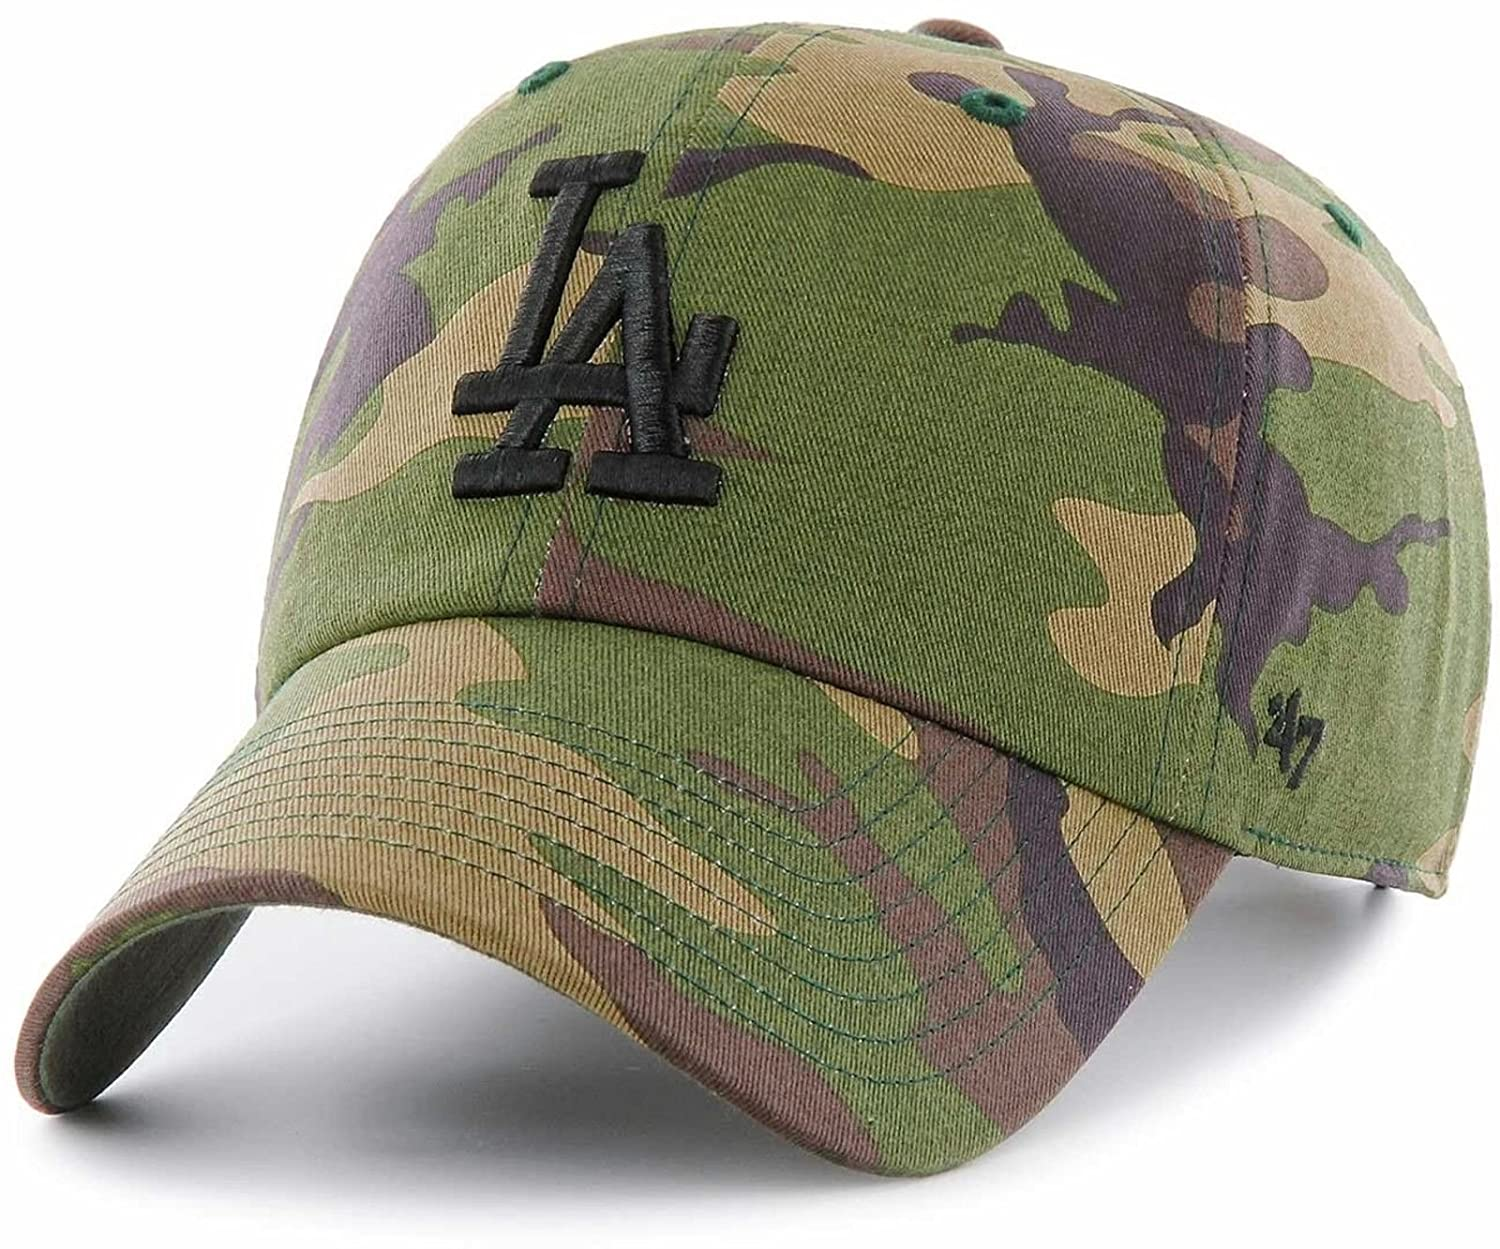 official photos 38061 10290 Amazon.com   47 Los Angeles Dodgers Brand Unwashed Camo Clean Up Slouch Fit  Hat, Wood Camo, One Size   Sports   Outdoors